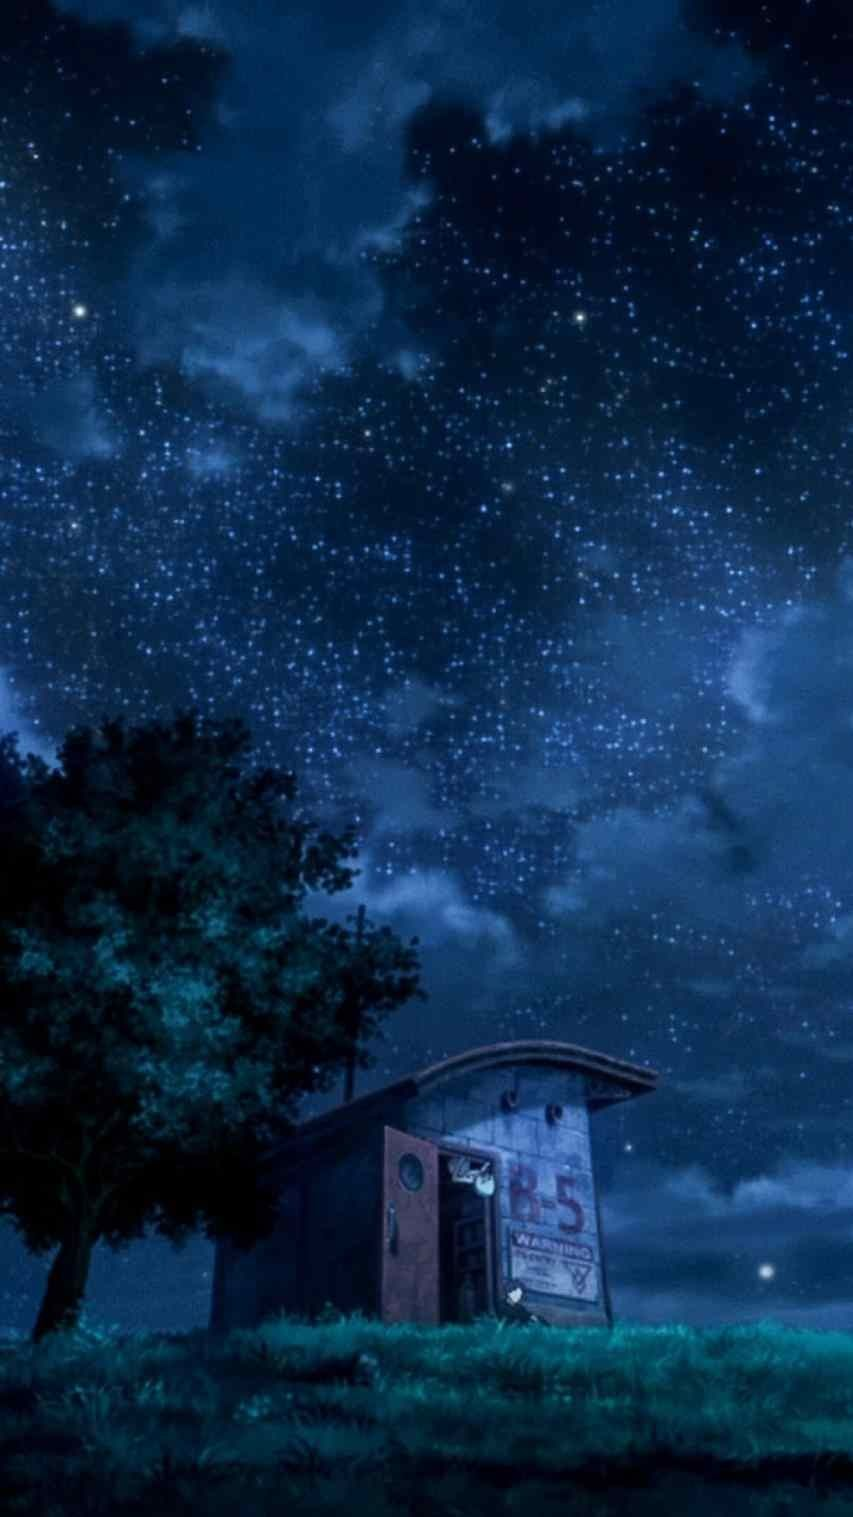 Https All Images Net Dark Anime Scenery Wallpaper Iphone Inspirational S High Definition With S Anime Scenery Anime Scenery Wallpaper Anime Wallpaper Iphone